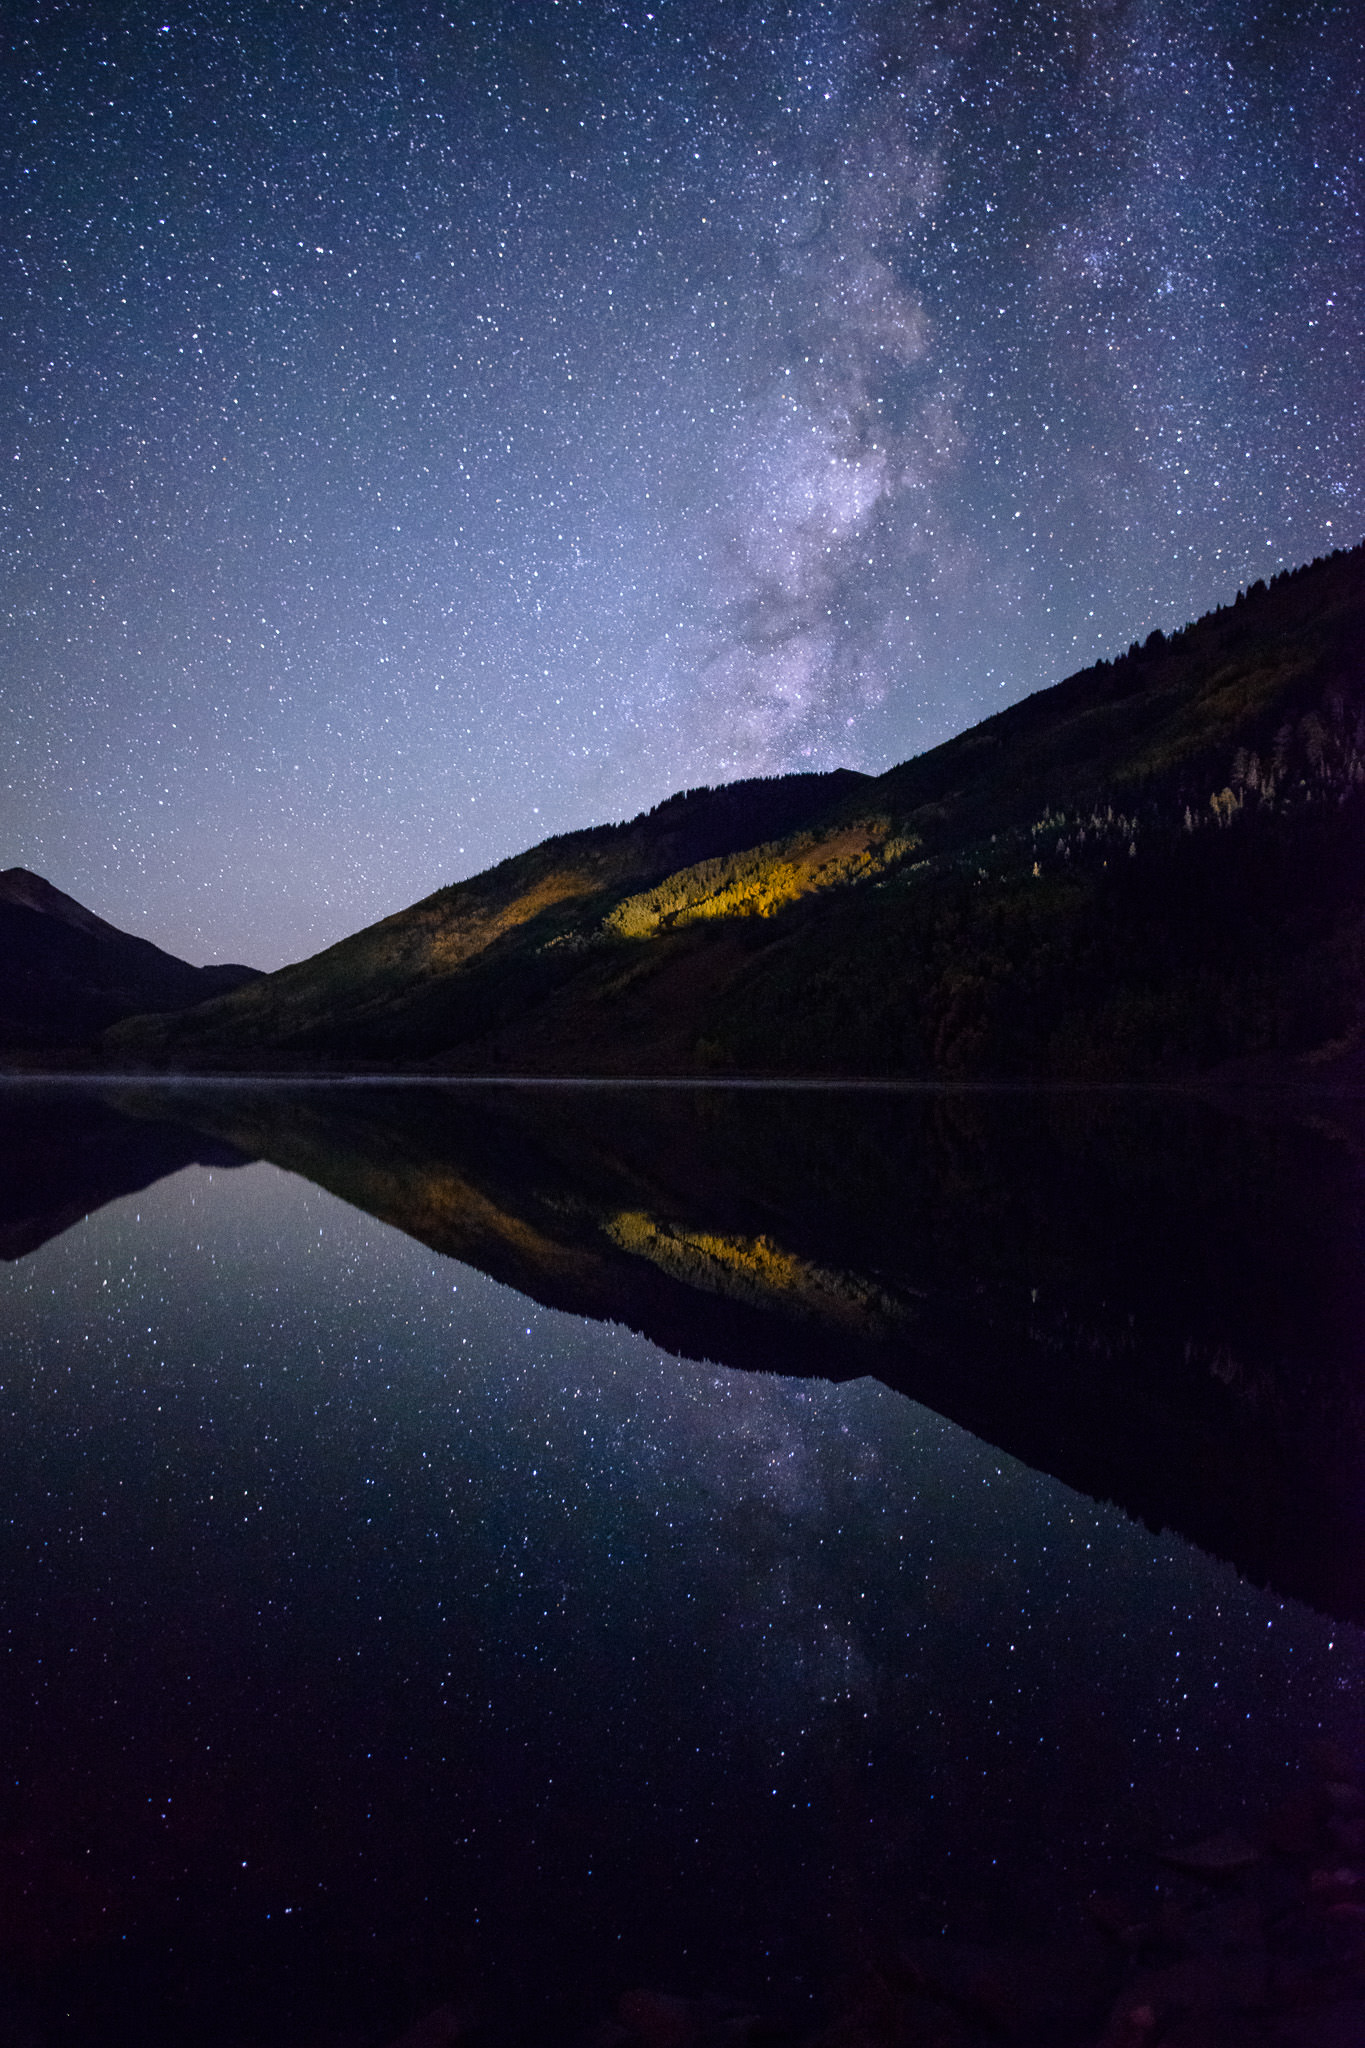 How to Photograph the Milky Way - A Detailed Guide for Beginners